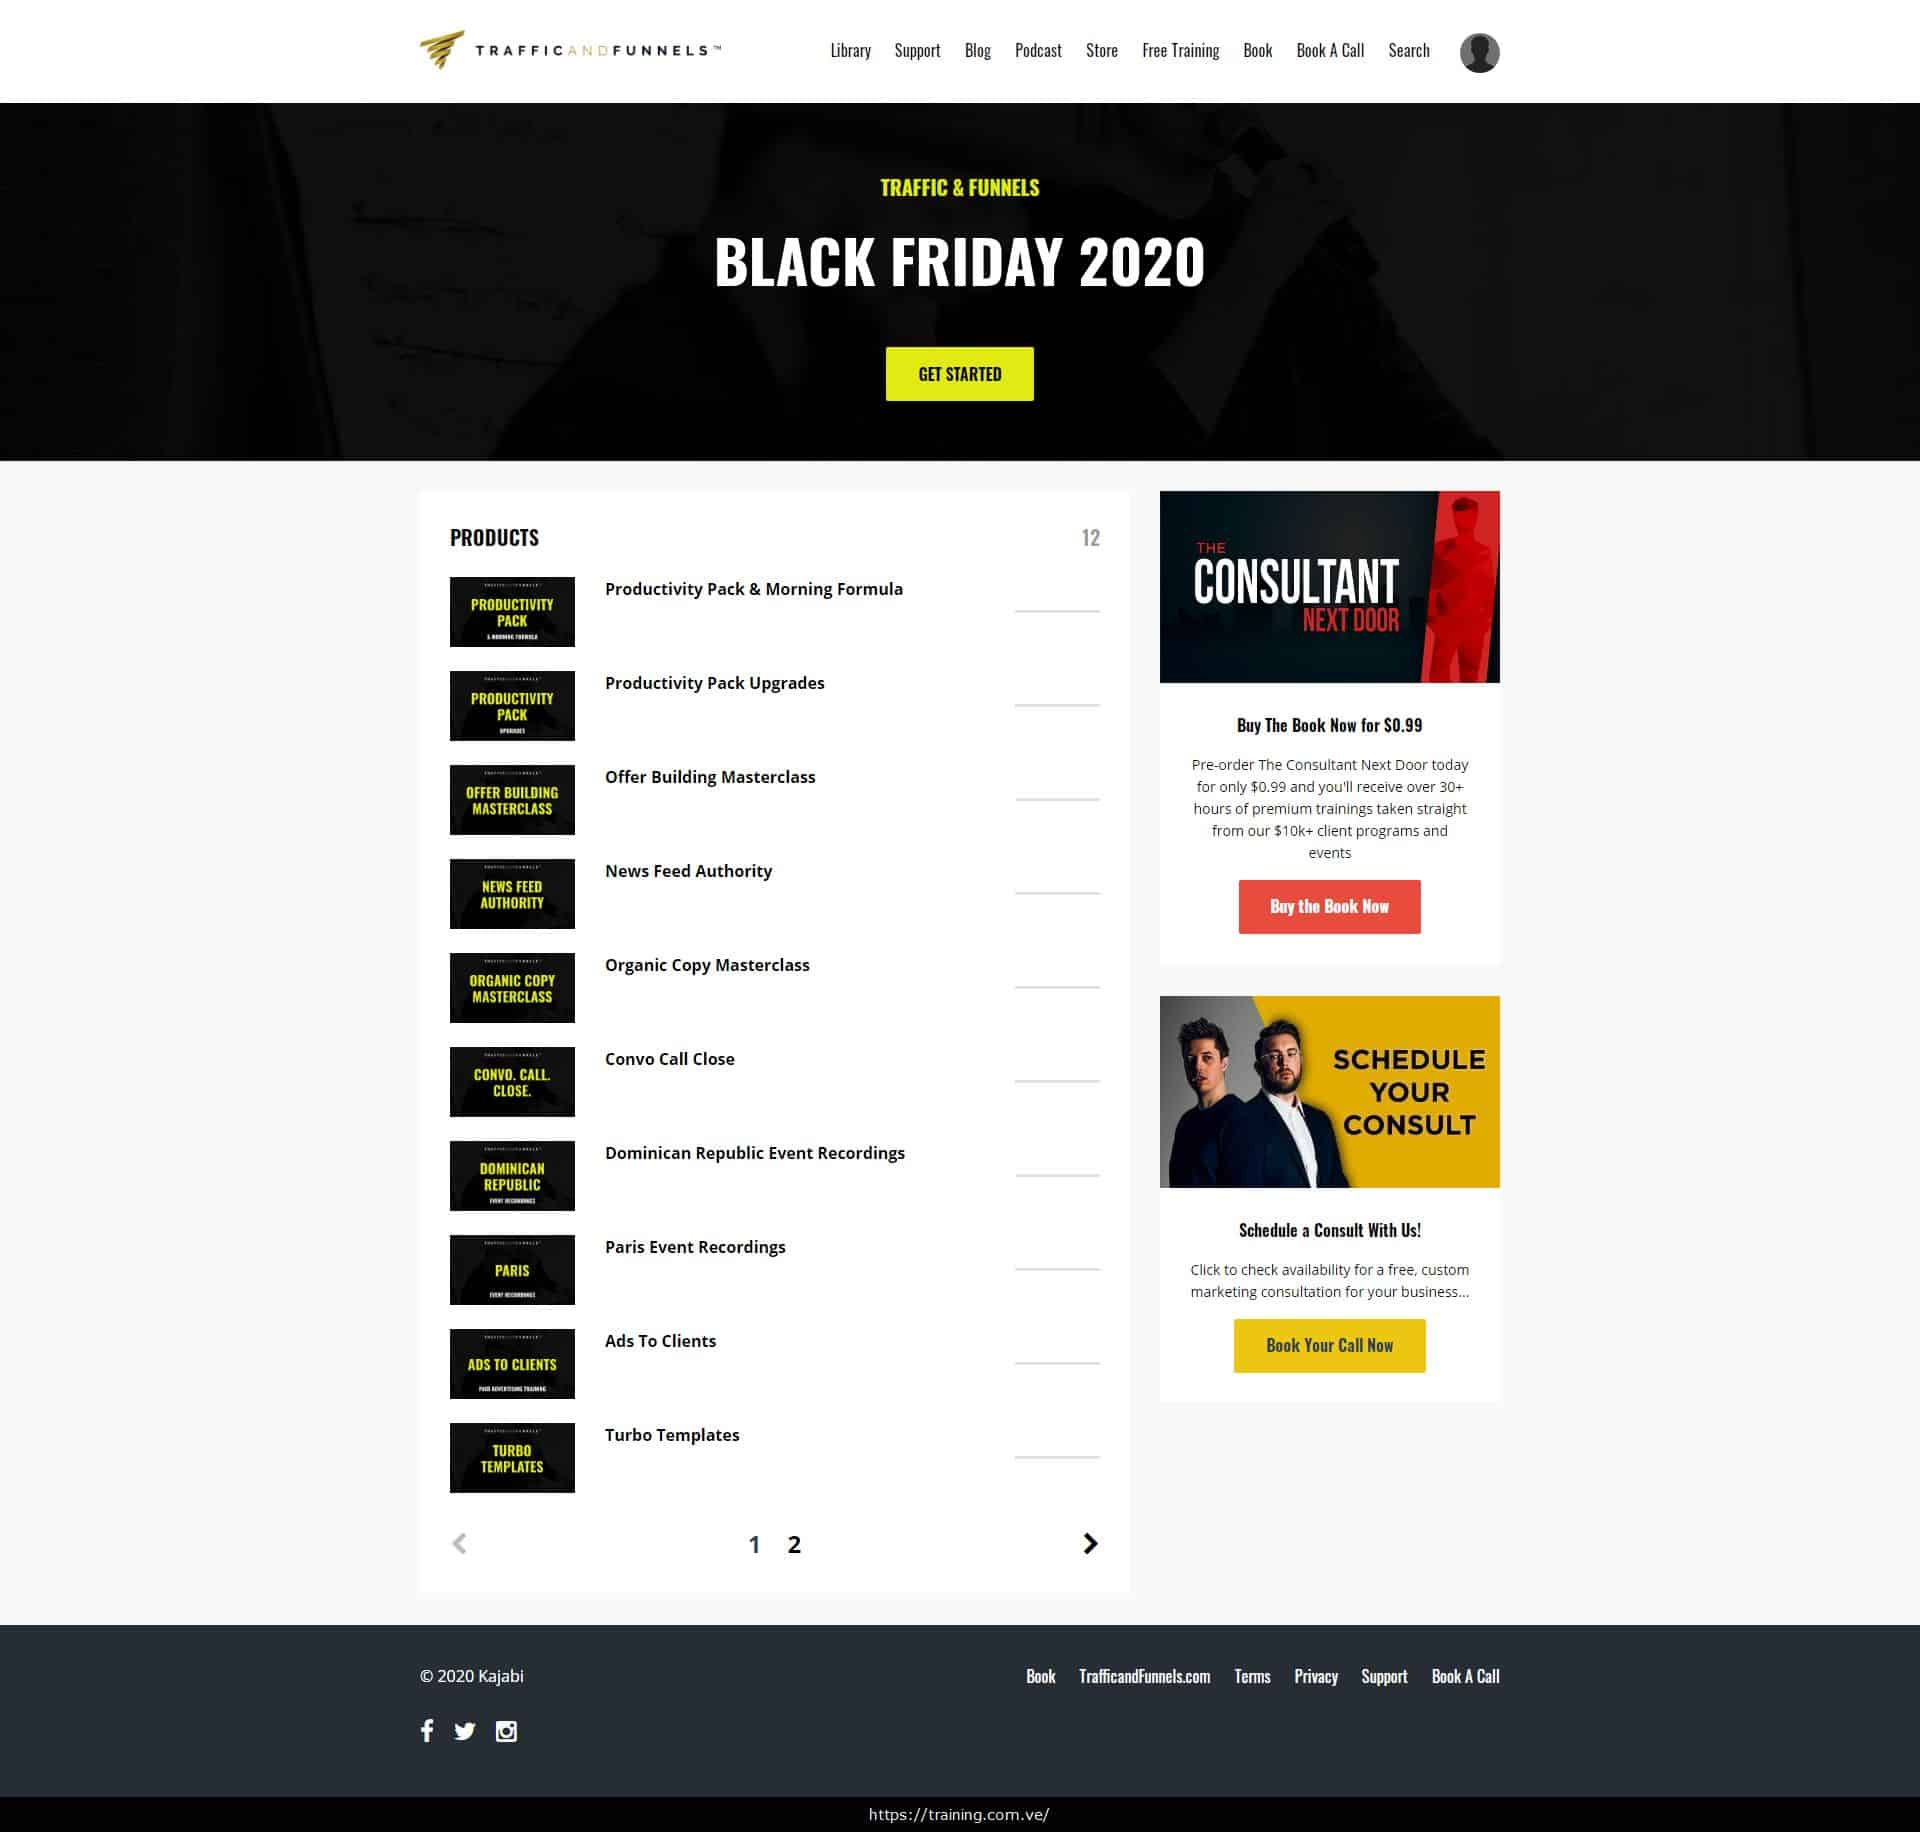 Traffic & Funnels Black Friday 2020 by Taylor Welch Download